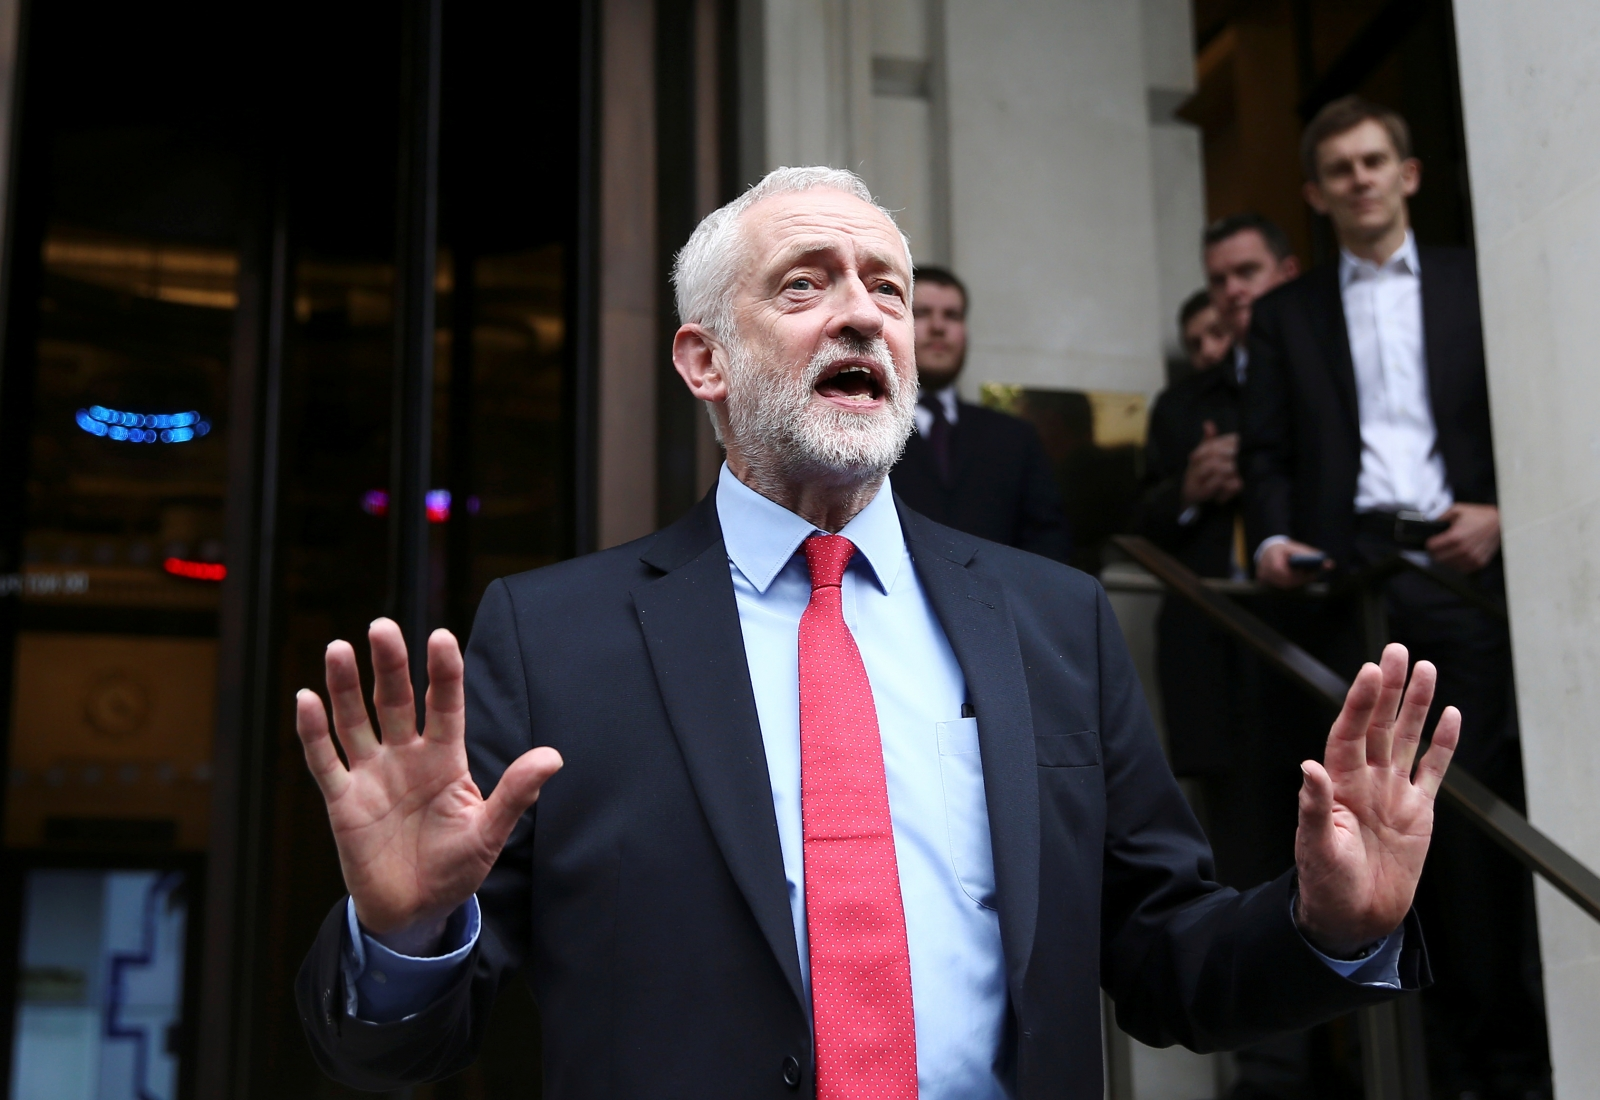 Labour reaches highest rating yet in latest General Election poll